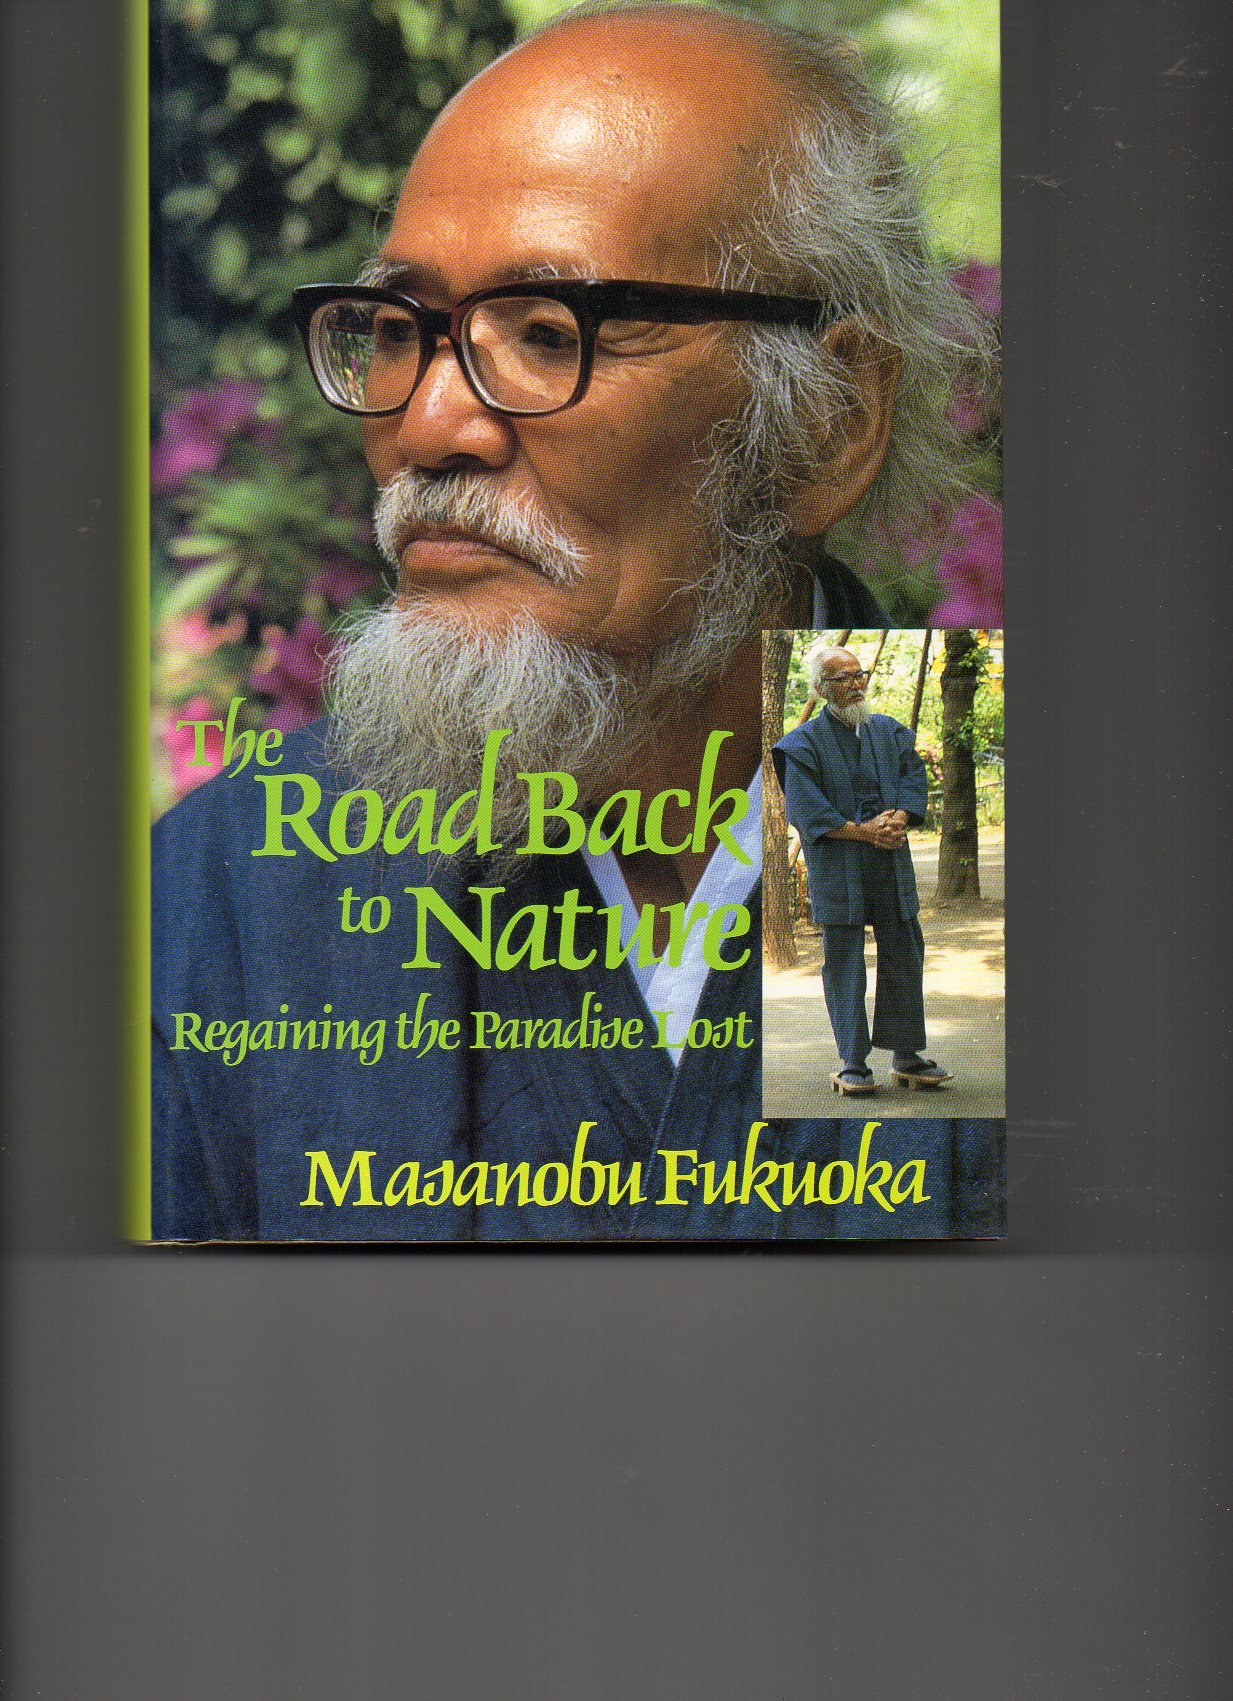 The Road Back to Nature: Regaining the Paradise Lost, Masanobu Fukuoka